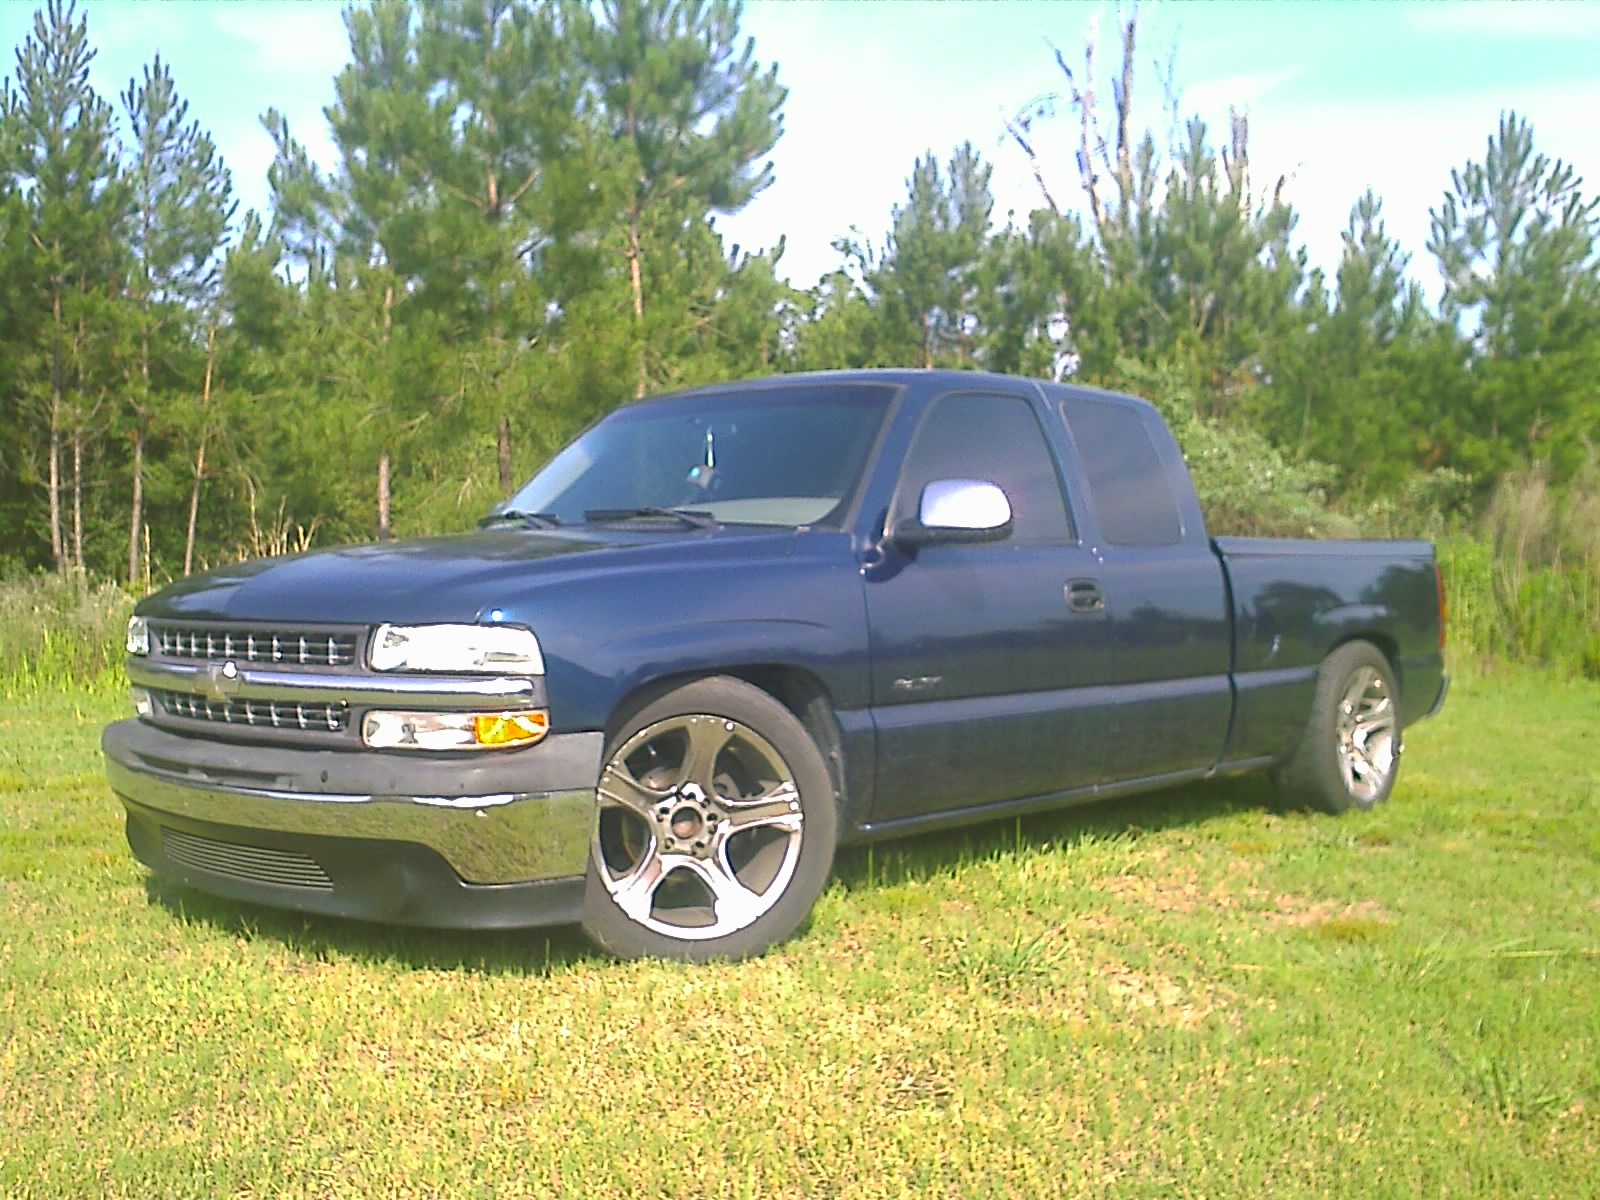 Chevrolet Silverado Ls Ext Cab Short Bed Wd Pic on 1999 Chevy Lumina Interior